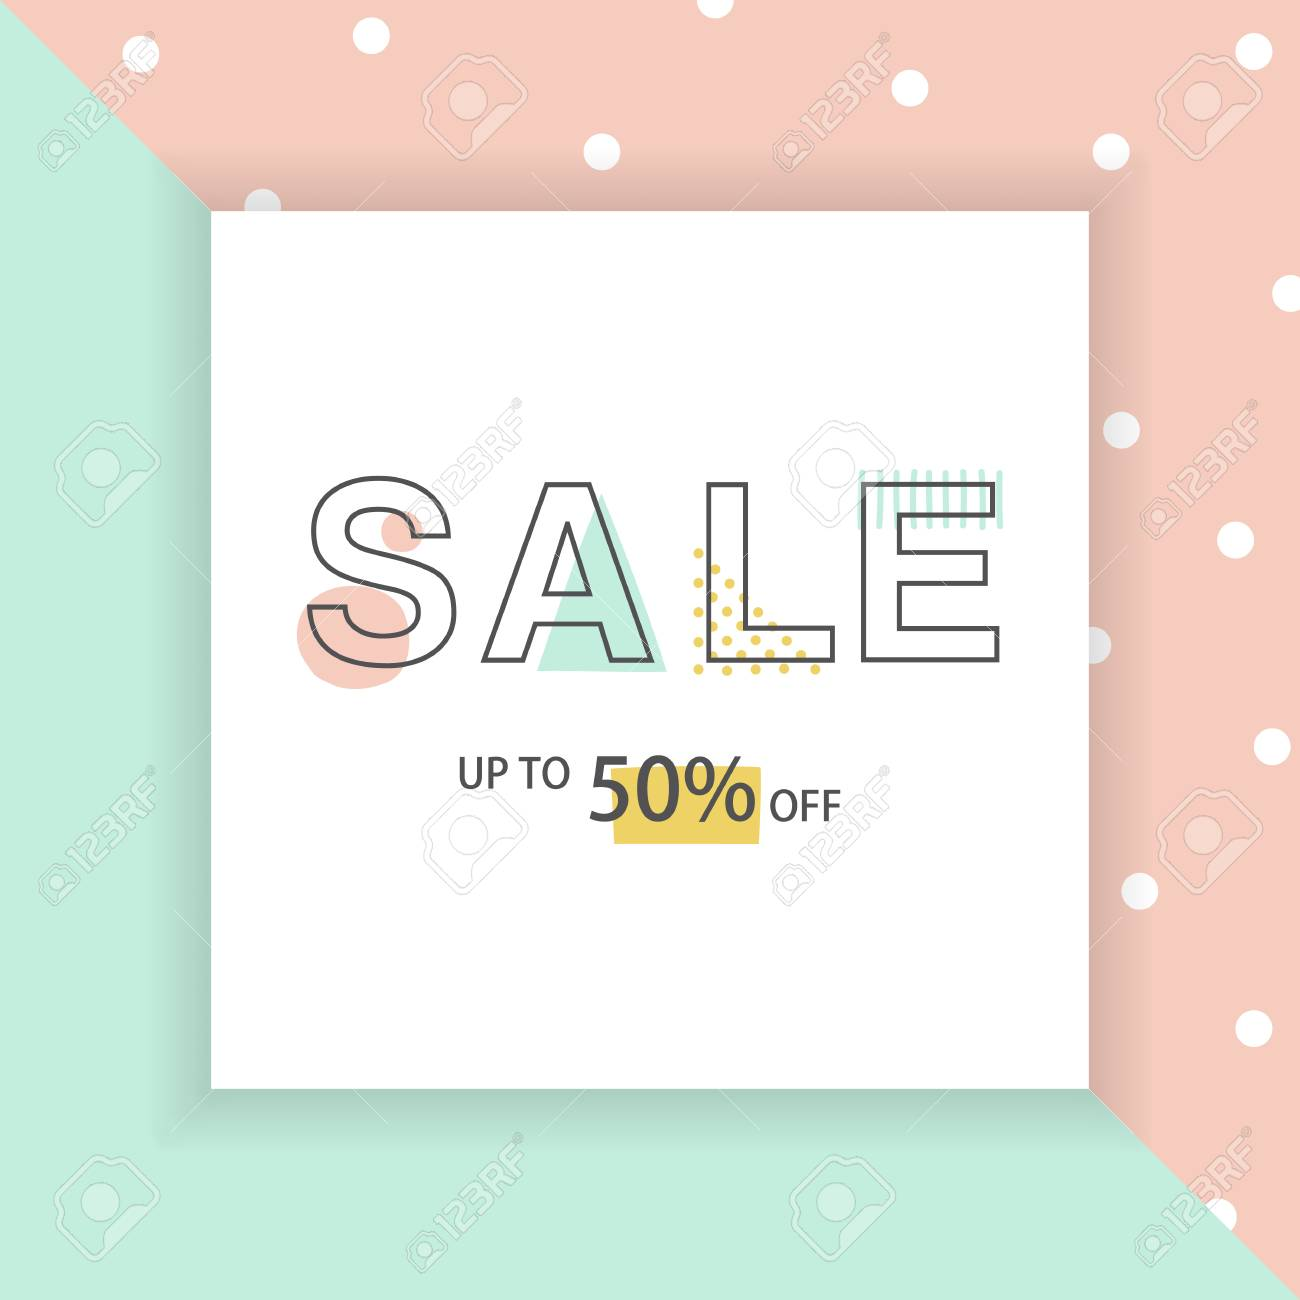 Design Online Shop Sale Banner Geometric Design For Online Shop Or Store Typeface